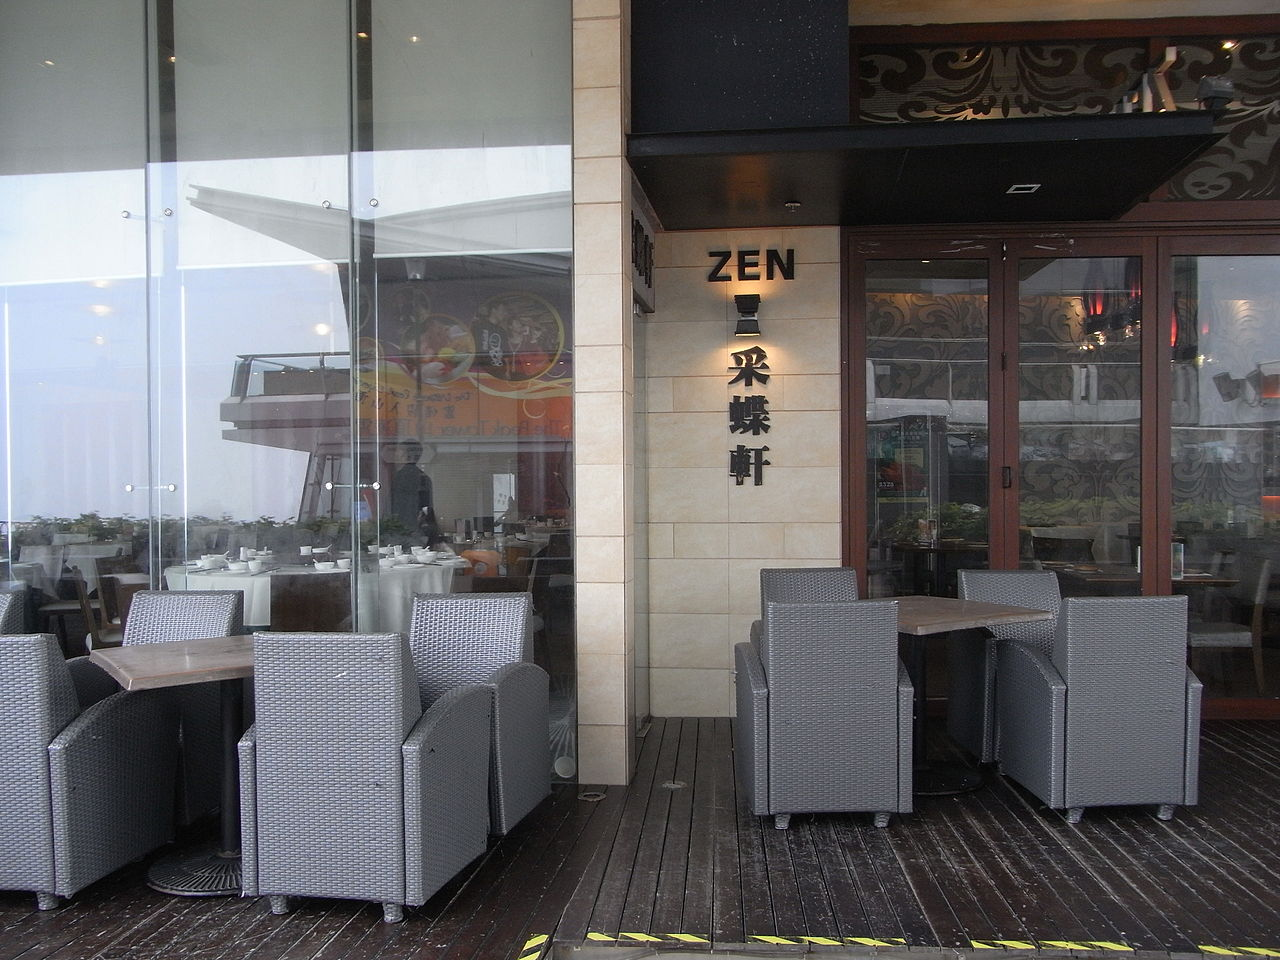 File hk peak road findlay road zen chinese cuisine for M zen chinese cuisine